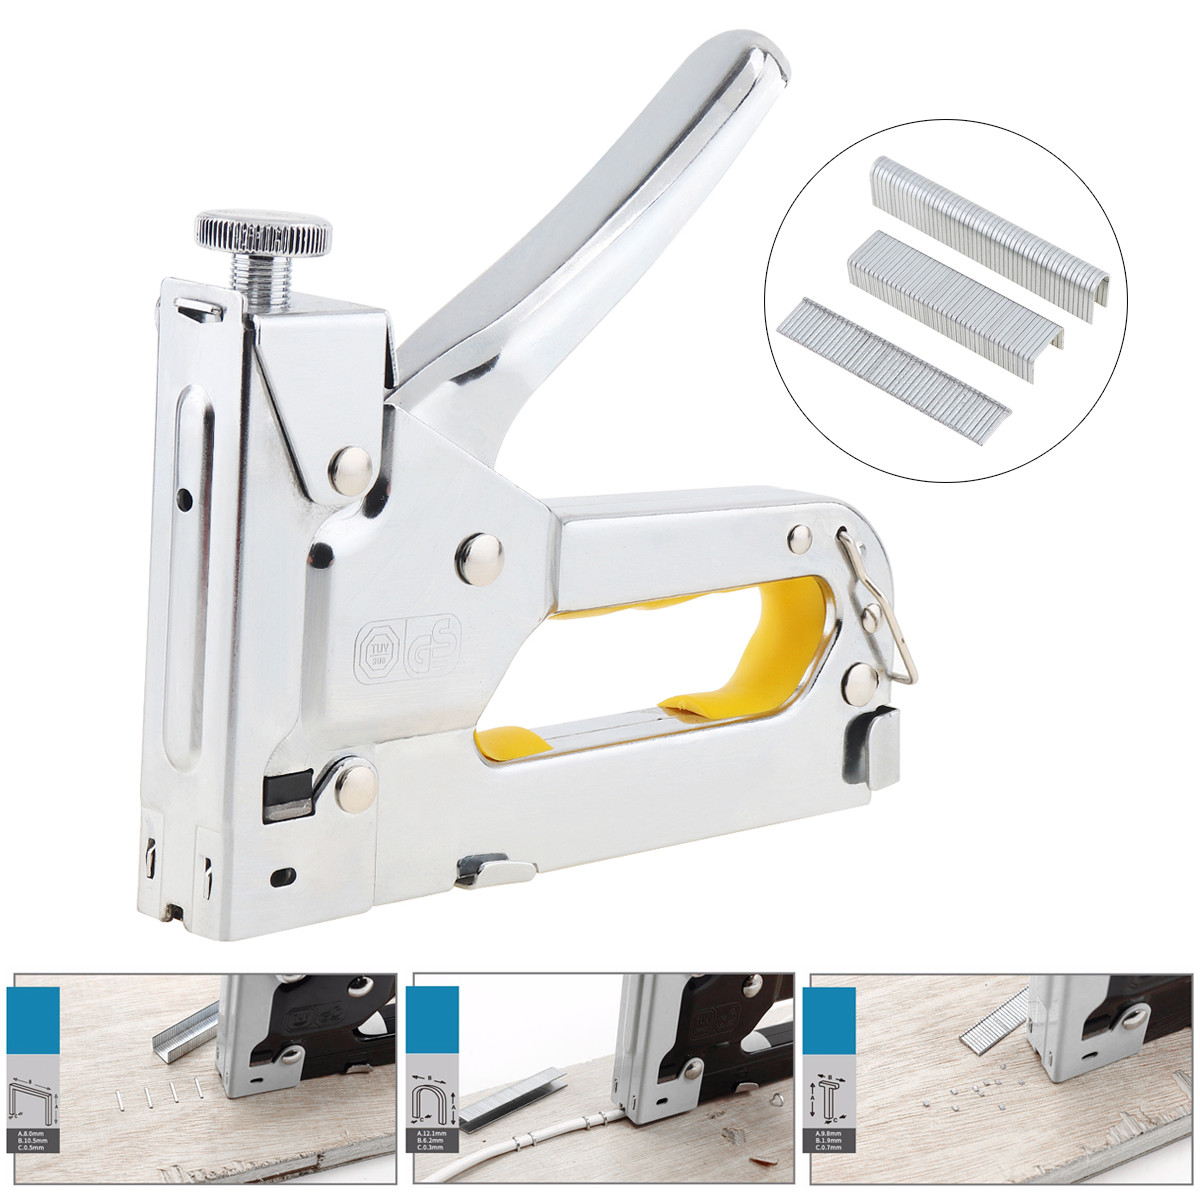 Three-purpose Manual Nail Staple Gun Furniture Stapler Upholstery Woodworking Tools With 600pcs Door-type U-type T-type Nails